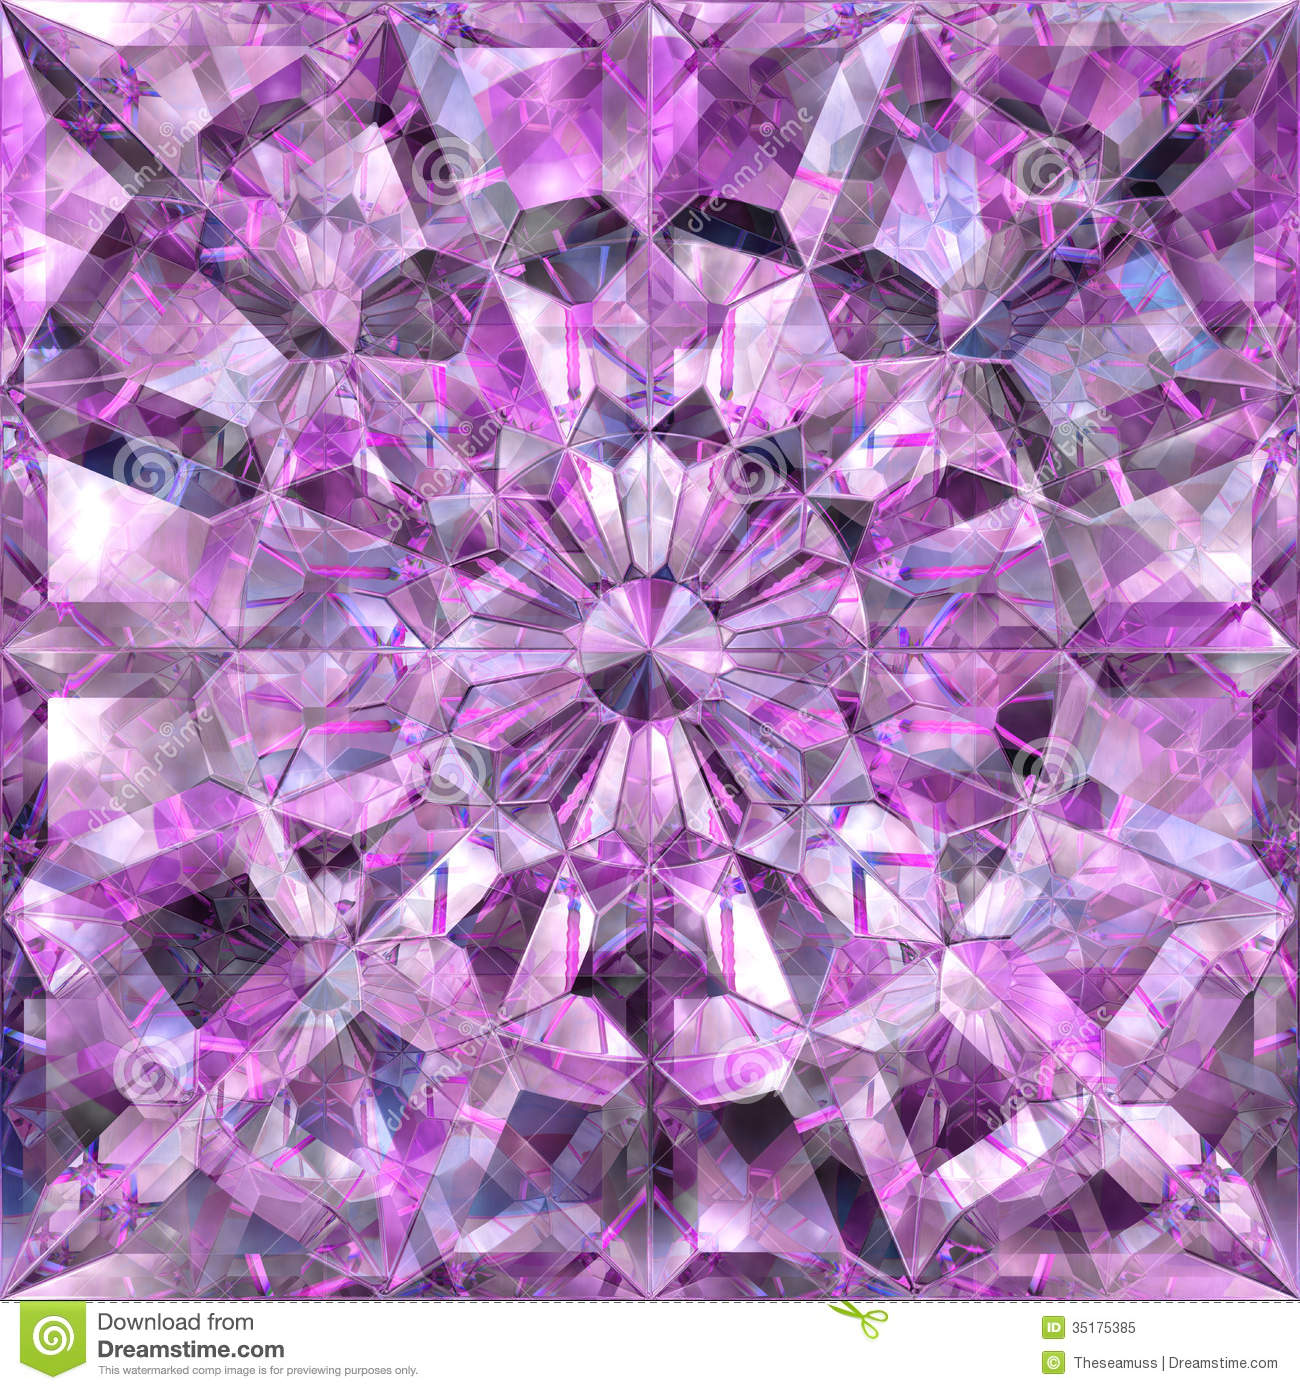 Diamond free vector download 614 Free vector for